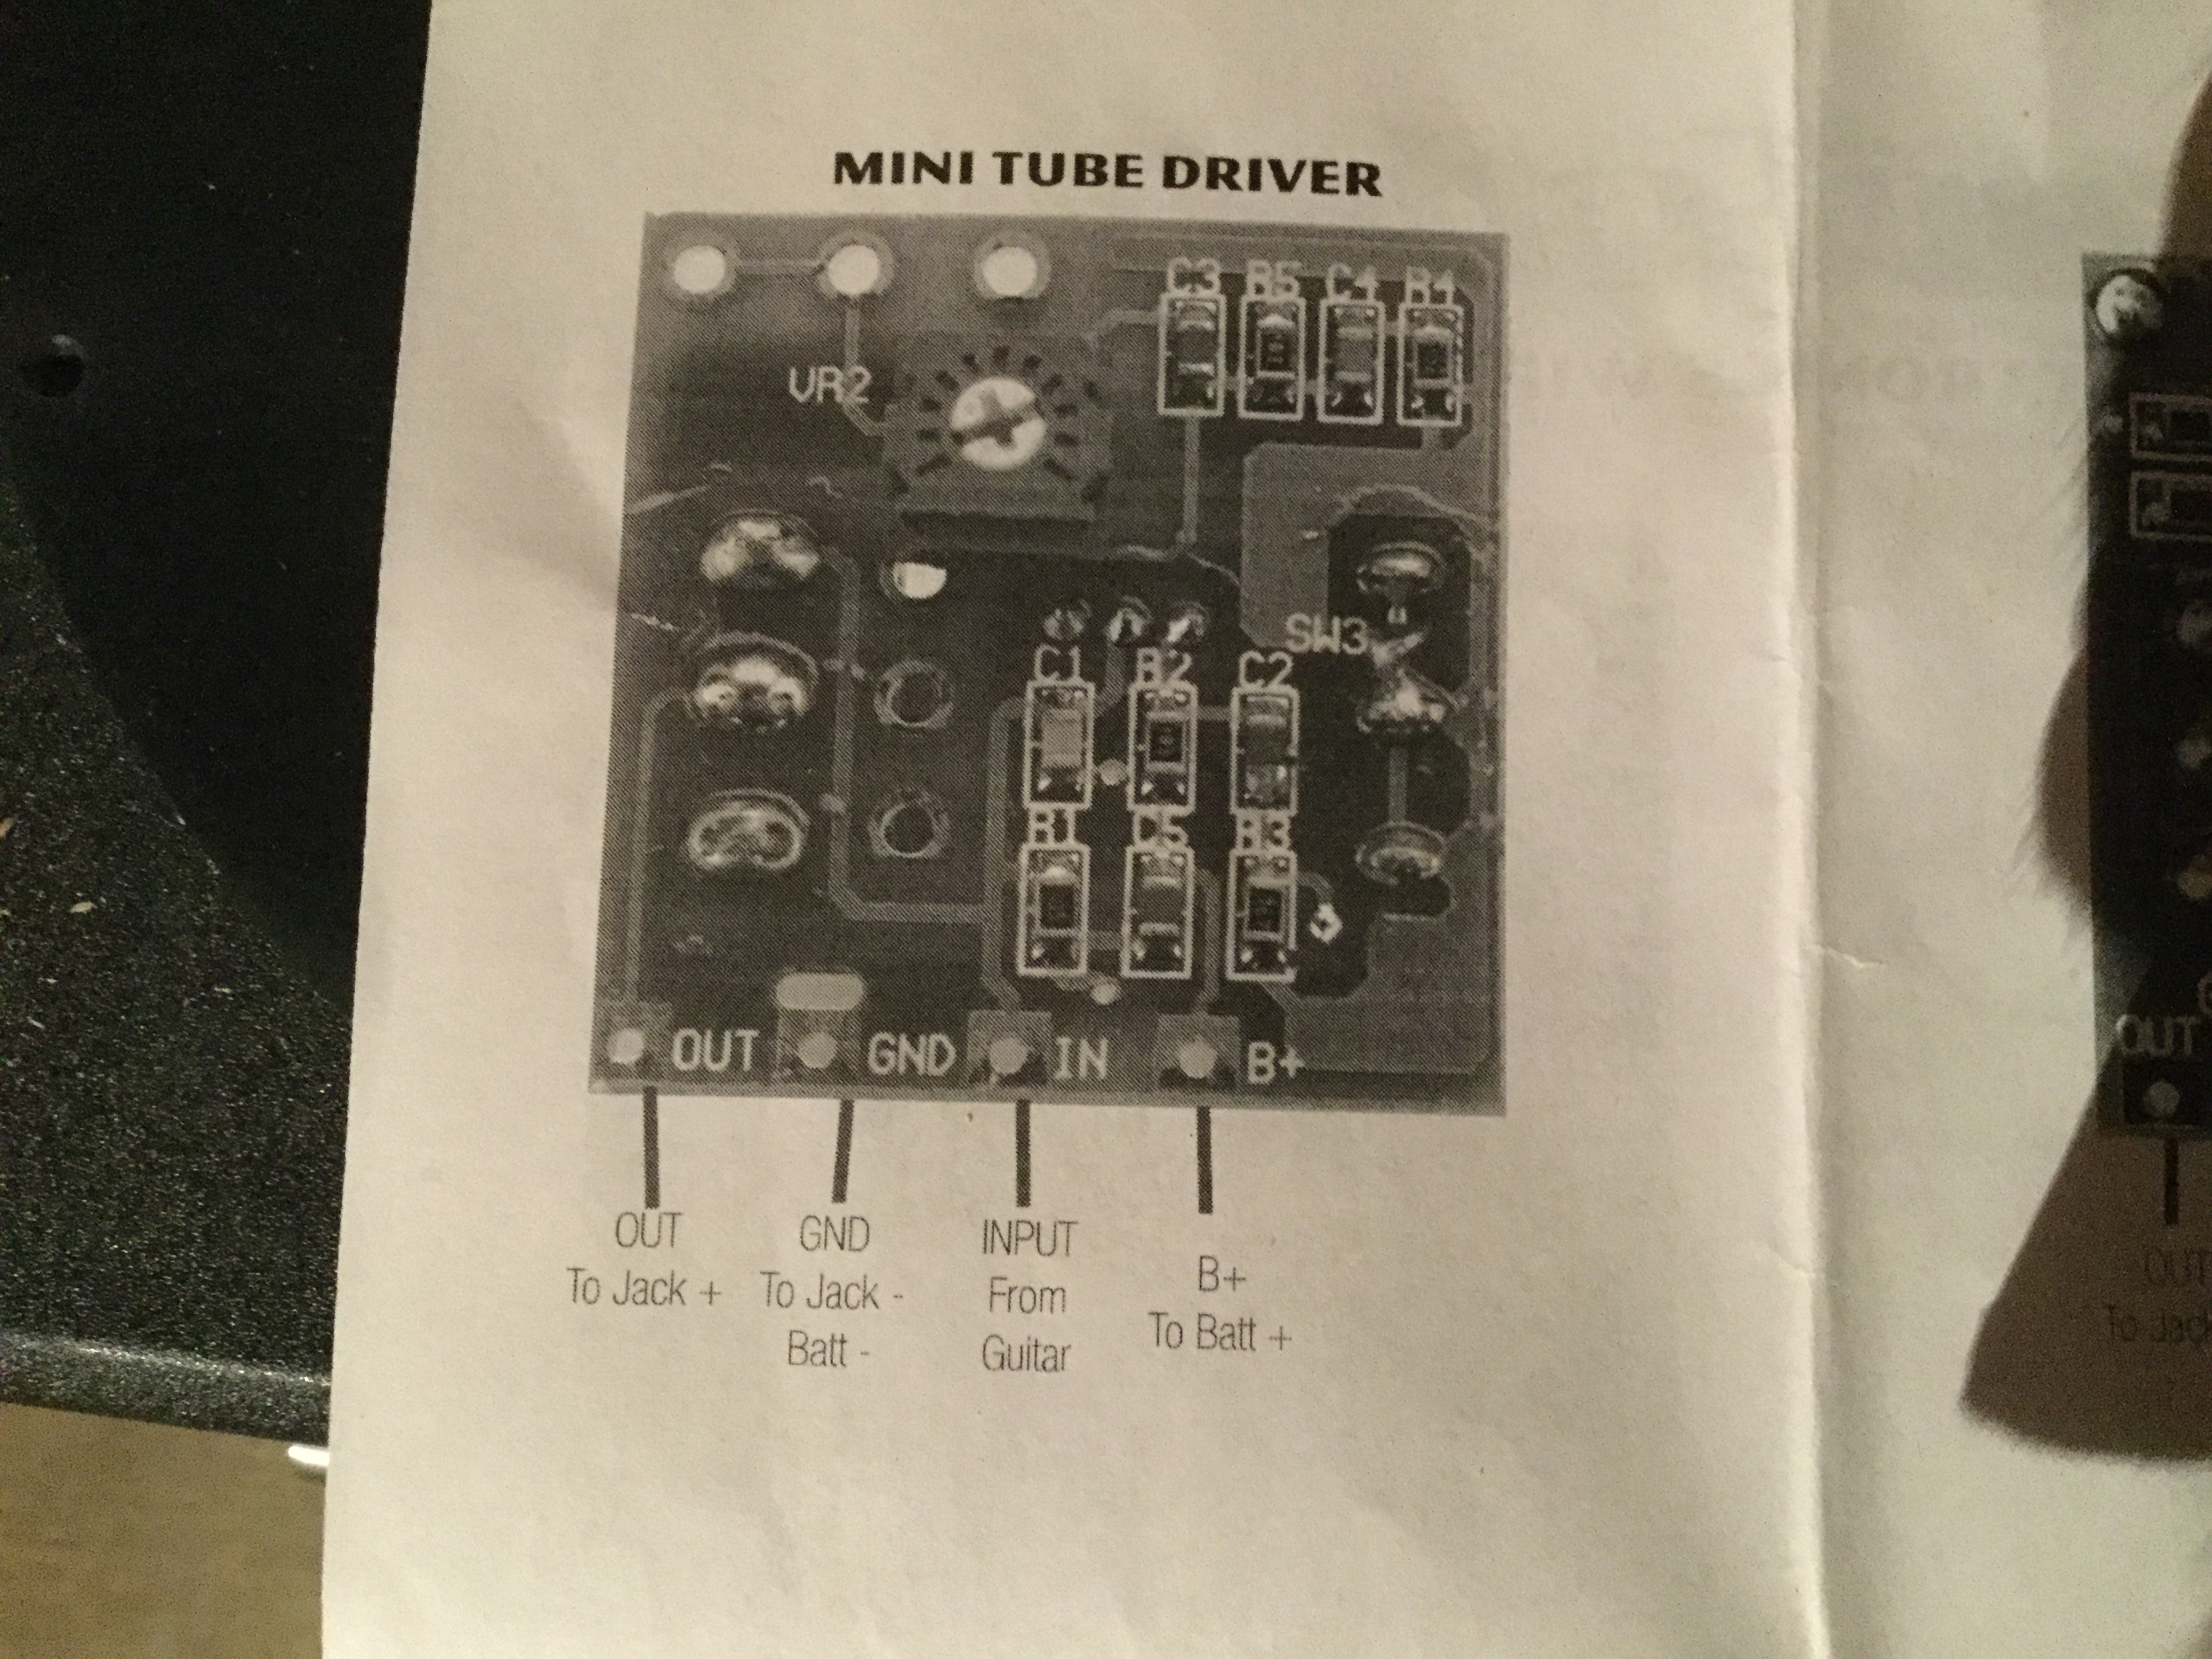 Here S The Backpanel And Here S The Wiring Diagram